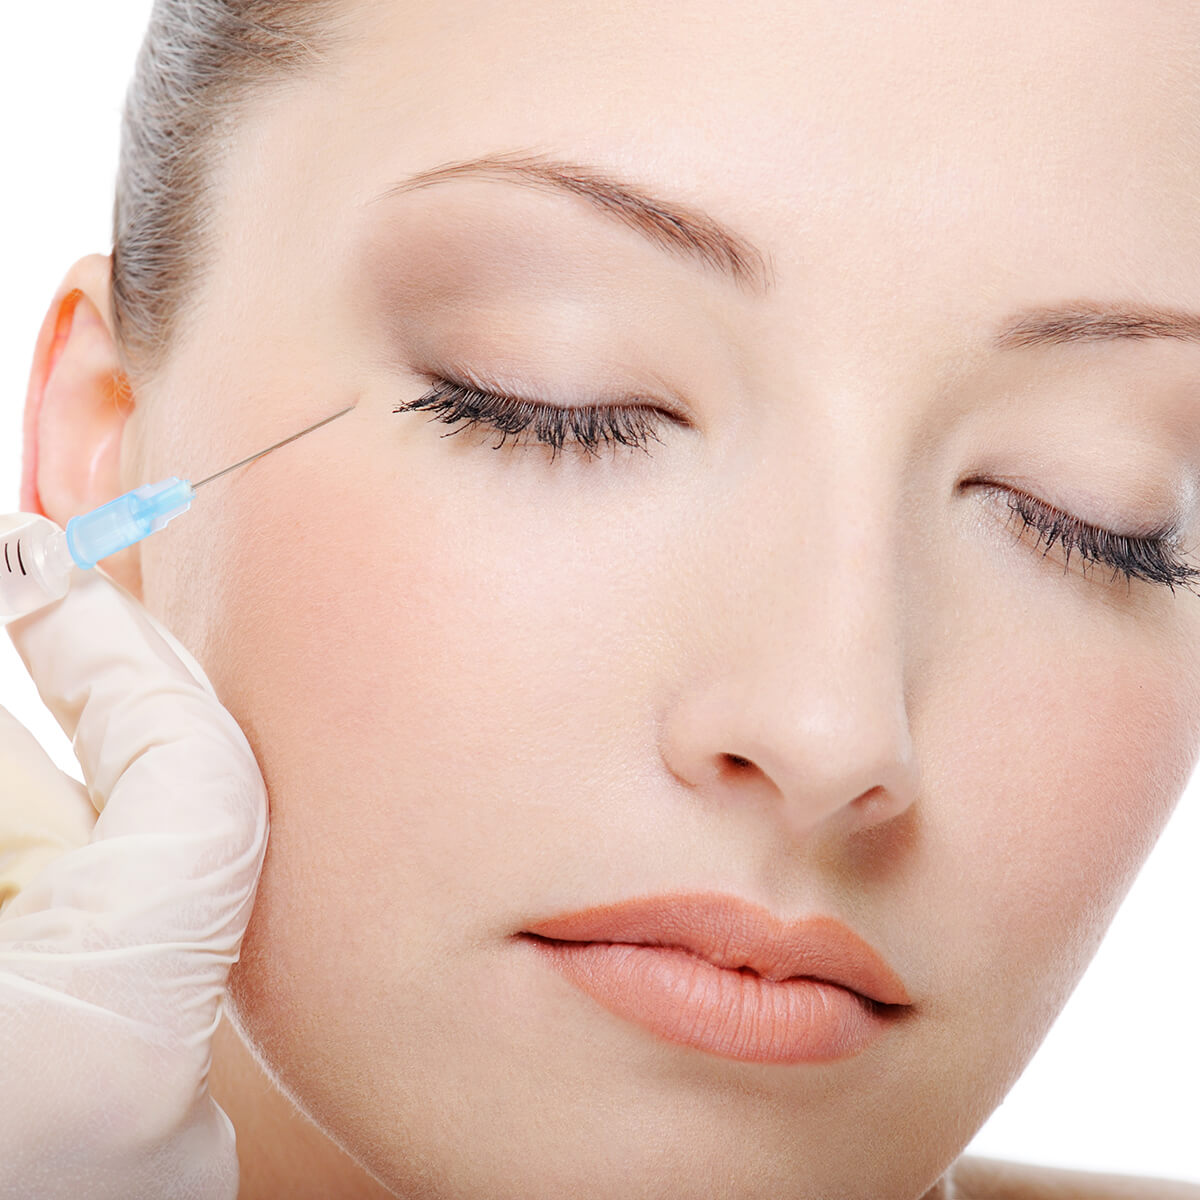 Get Juvederm Treatment at Dermatology & Cosmetic Laser Center in Huntington NY Area